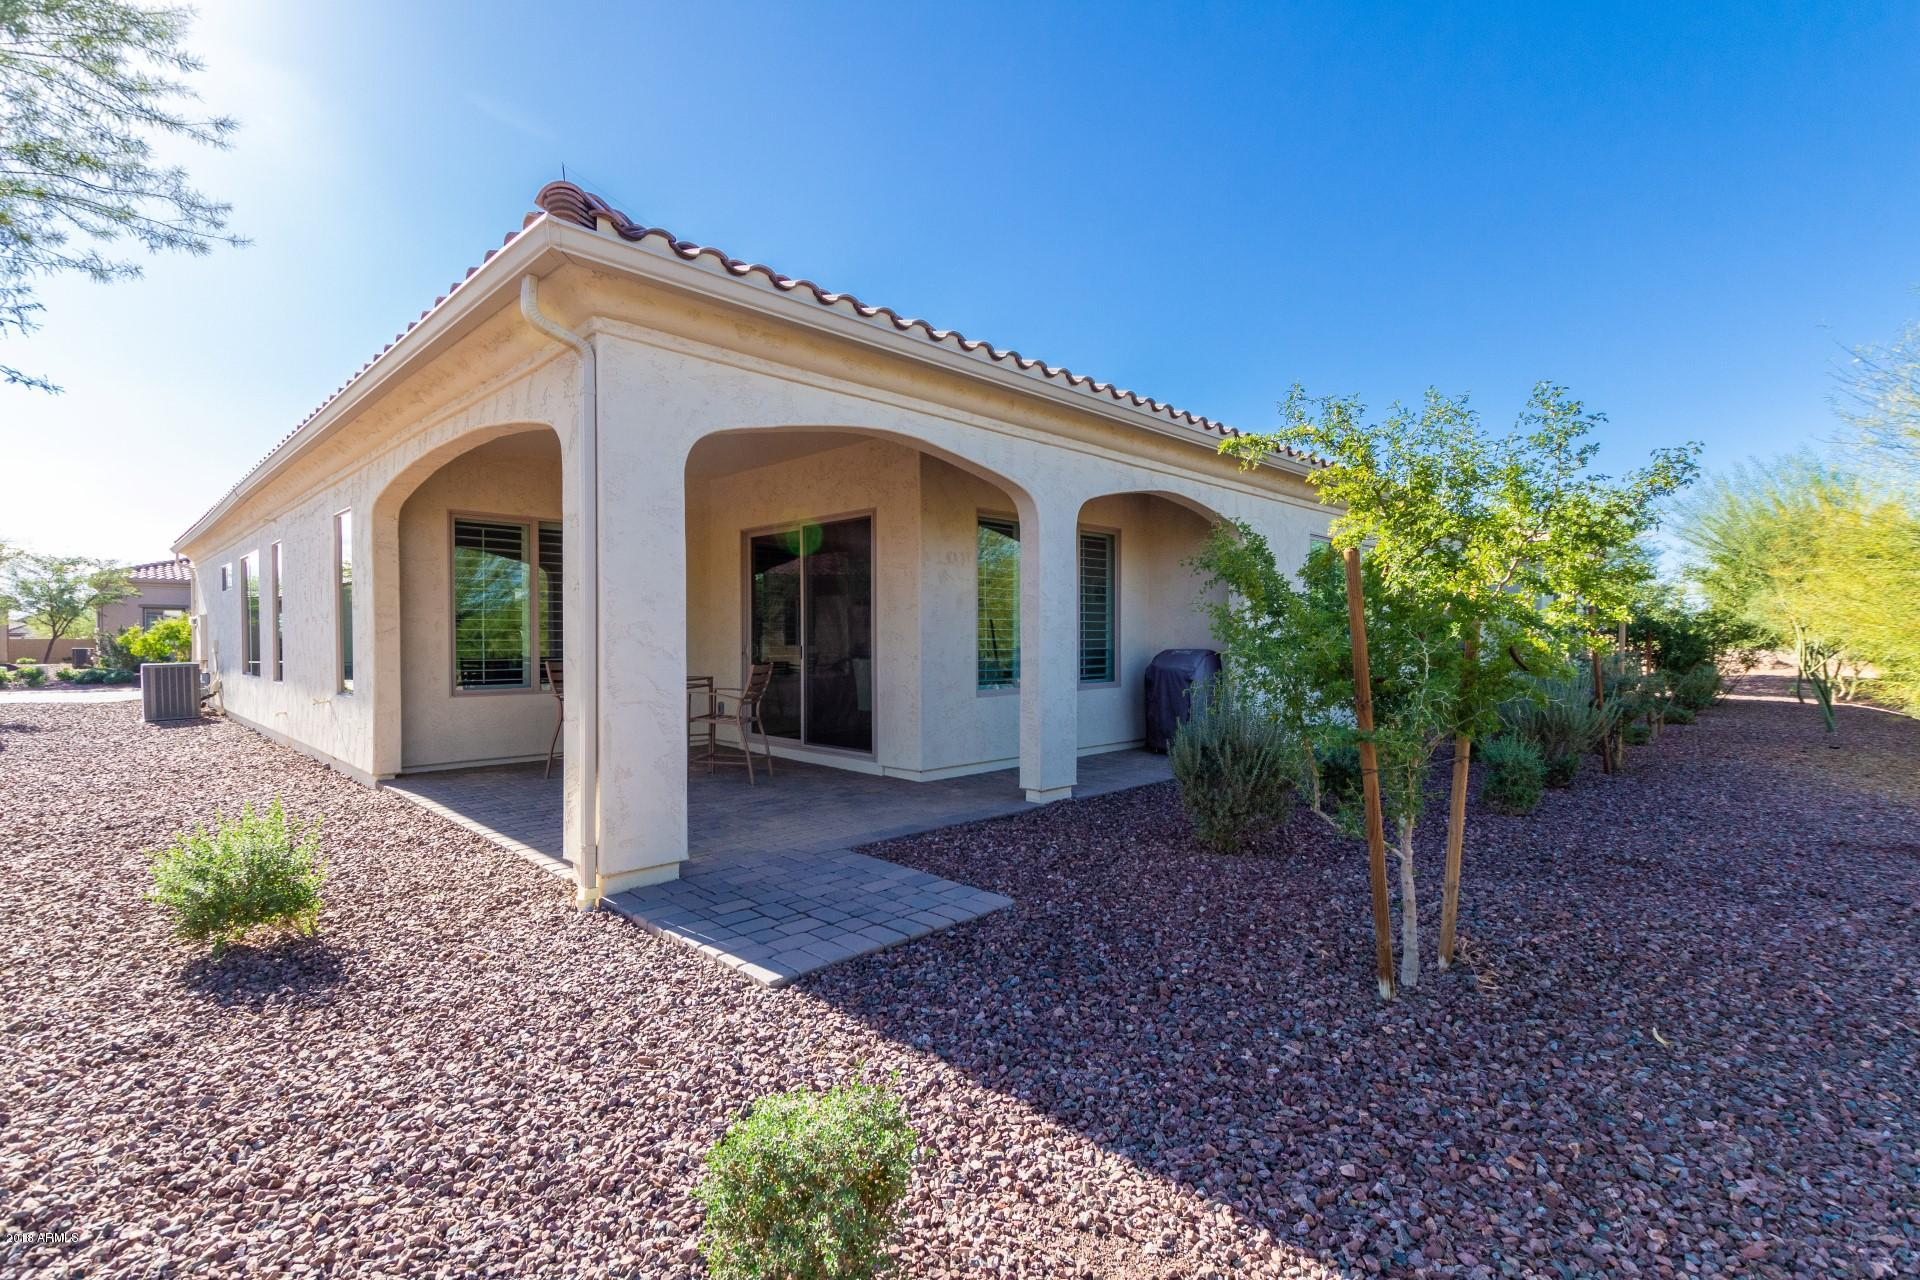 MLS 5853339 16458 W PICCADILLY Road, Goodyear, AZ 85395 Goodyear AZ Condo or Townhome